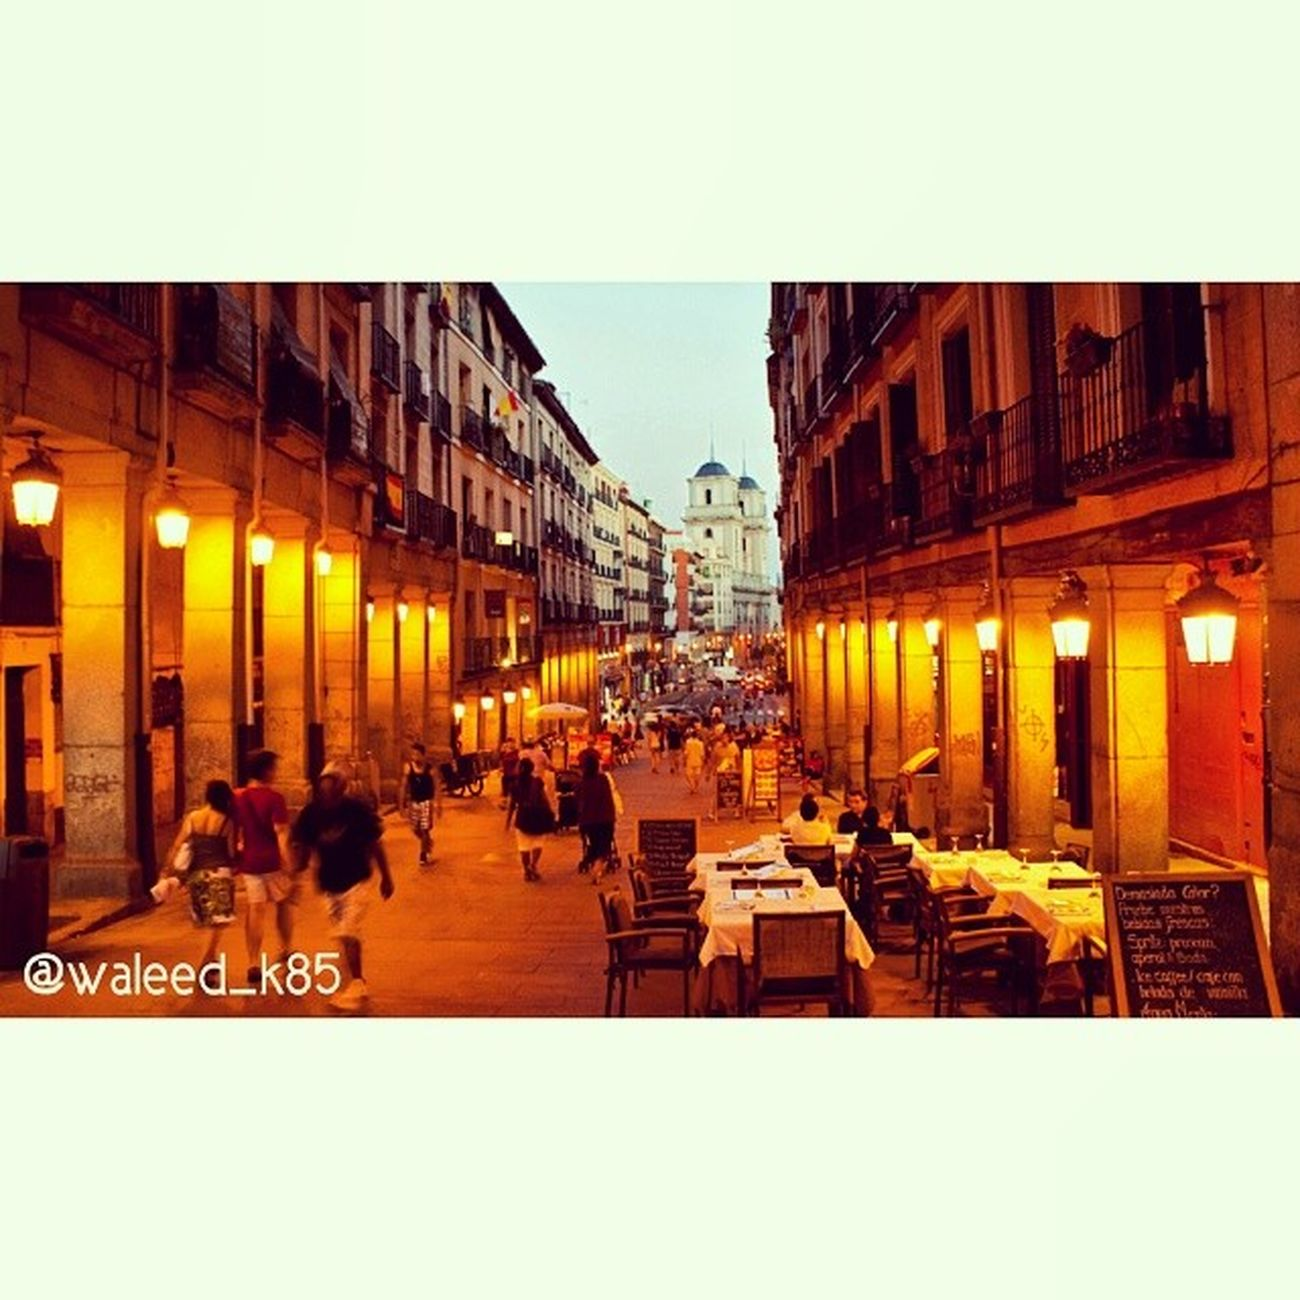 Calle Toledo Calletoledo near Plazamayor plaza_mayor. Madrid Spain españa. Taken by my sonyalpha dslr a200. Taken in my 2010 summer trip مدريد اسبانيا حي